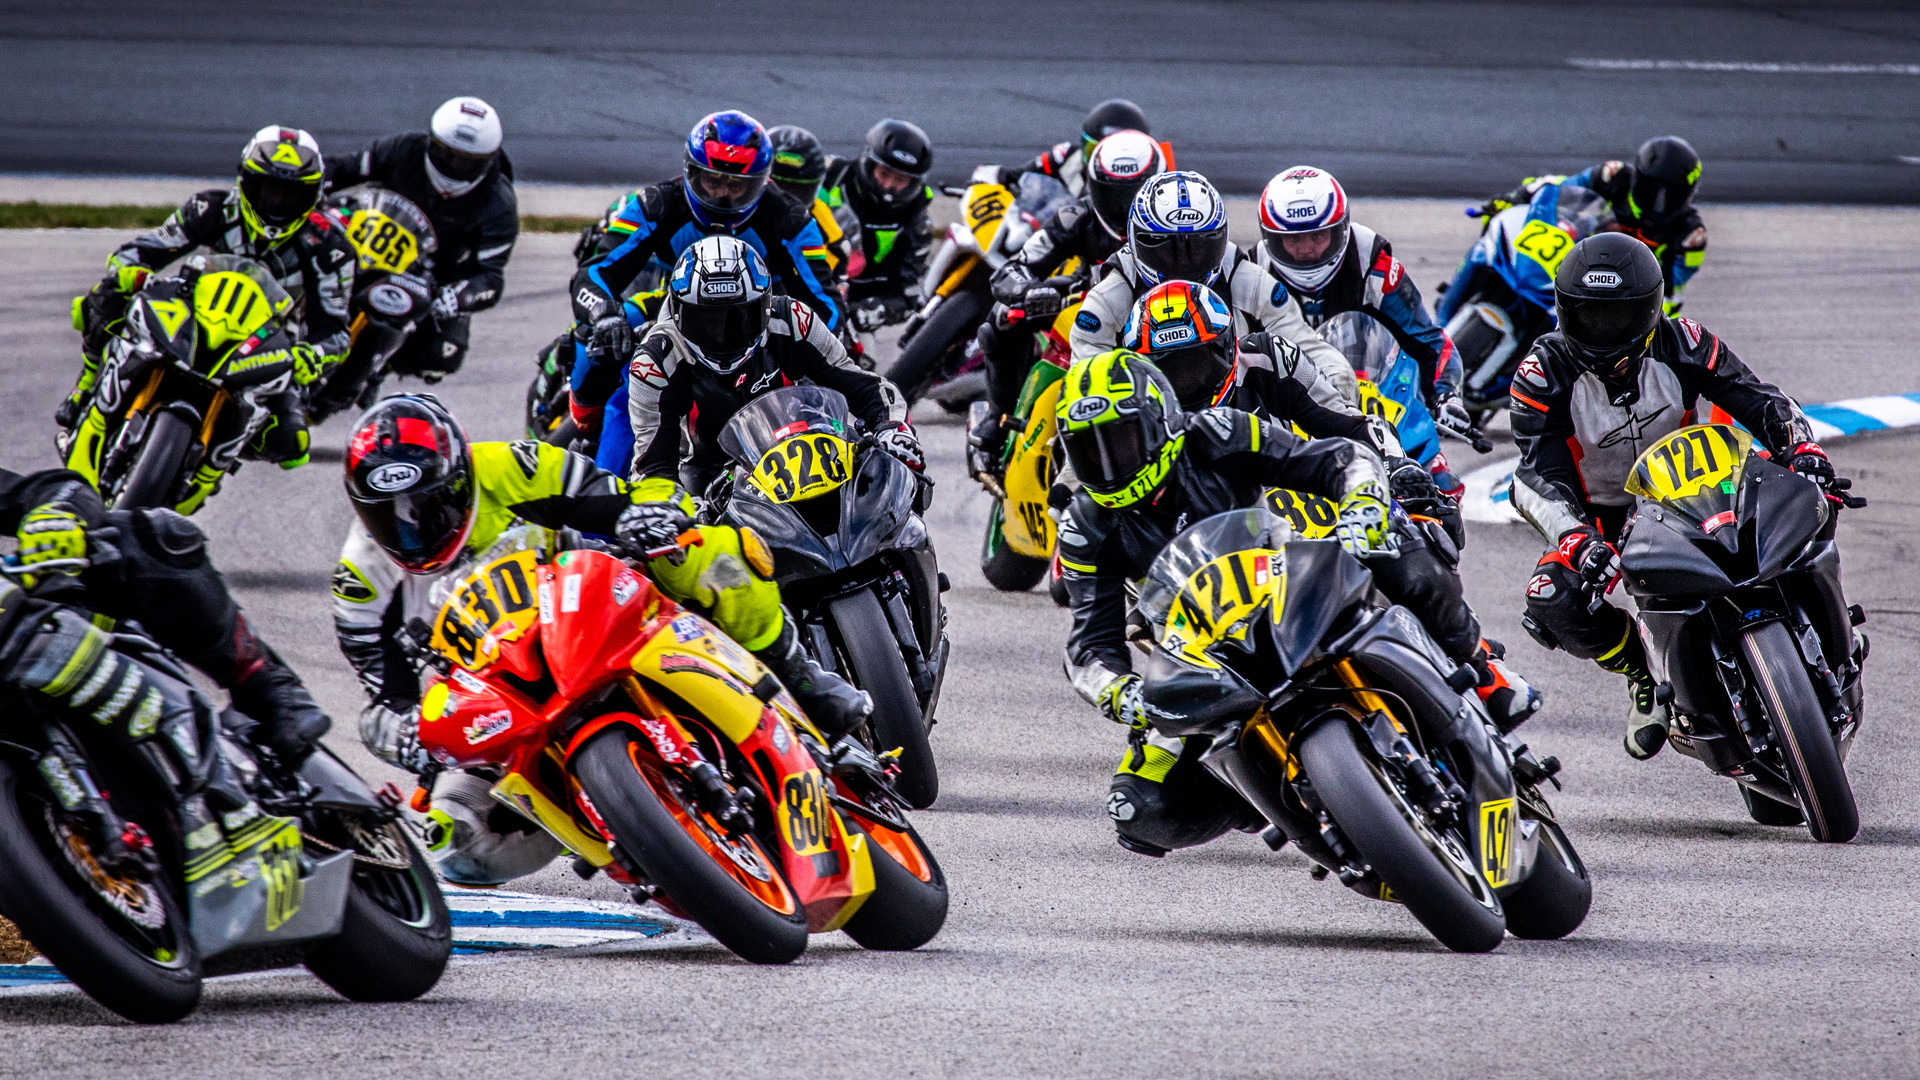 Action from a NEMRR race at New Hampshire Motor Speedway (NHMS). Photo courtesy NEMRR.